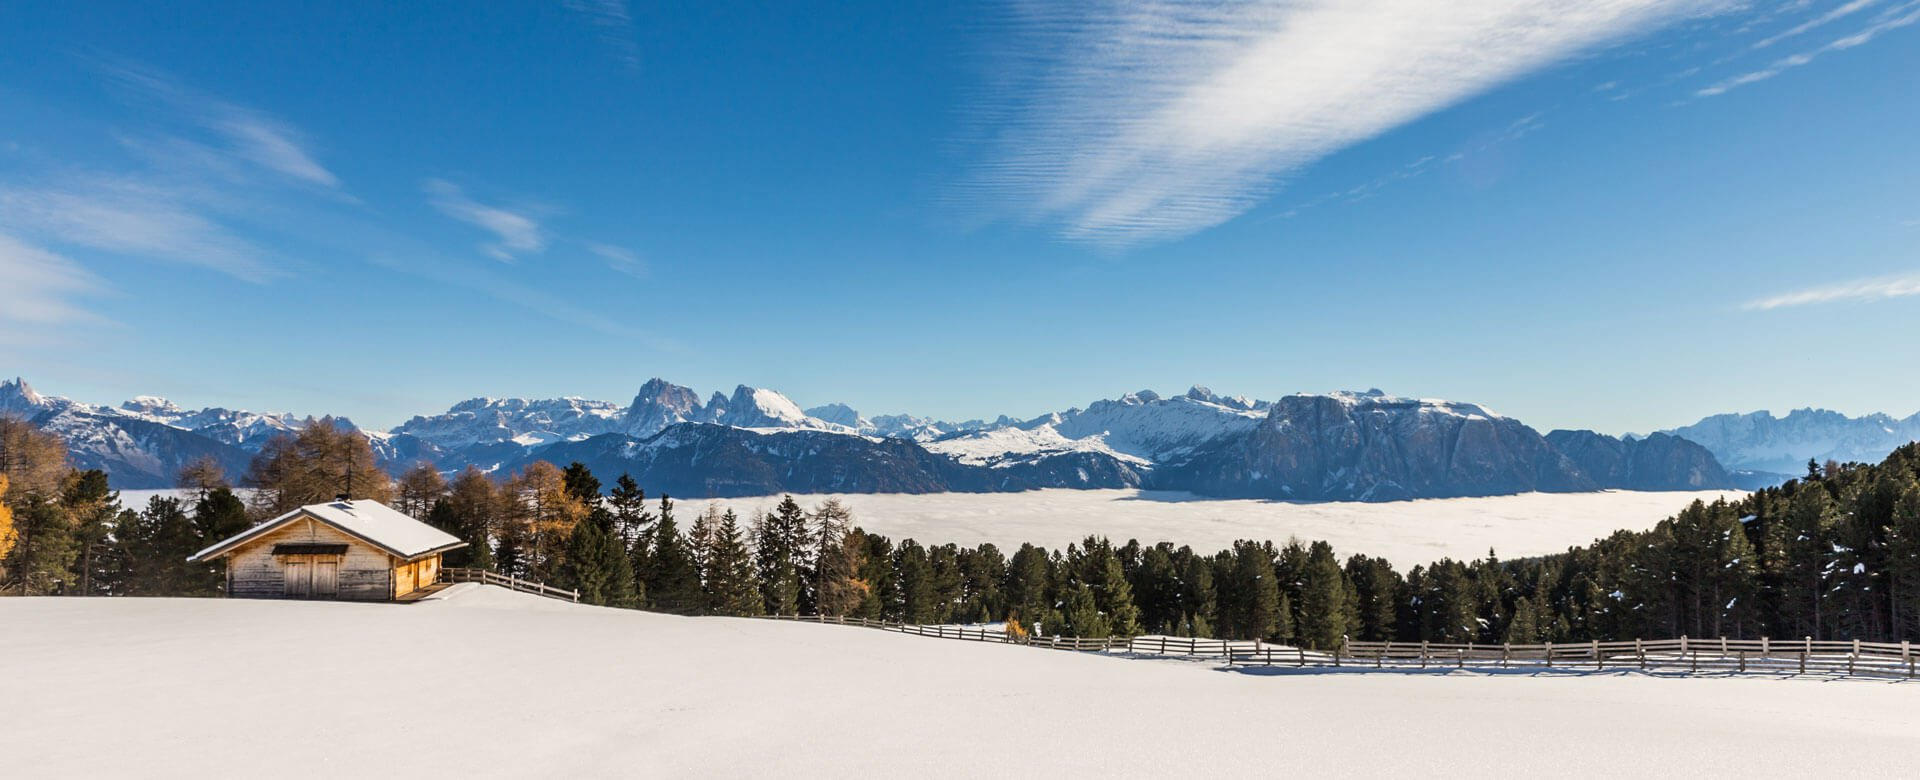 winter-eisacktal-7